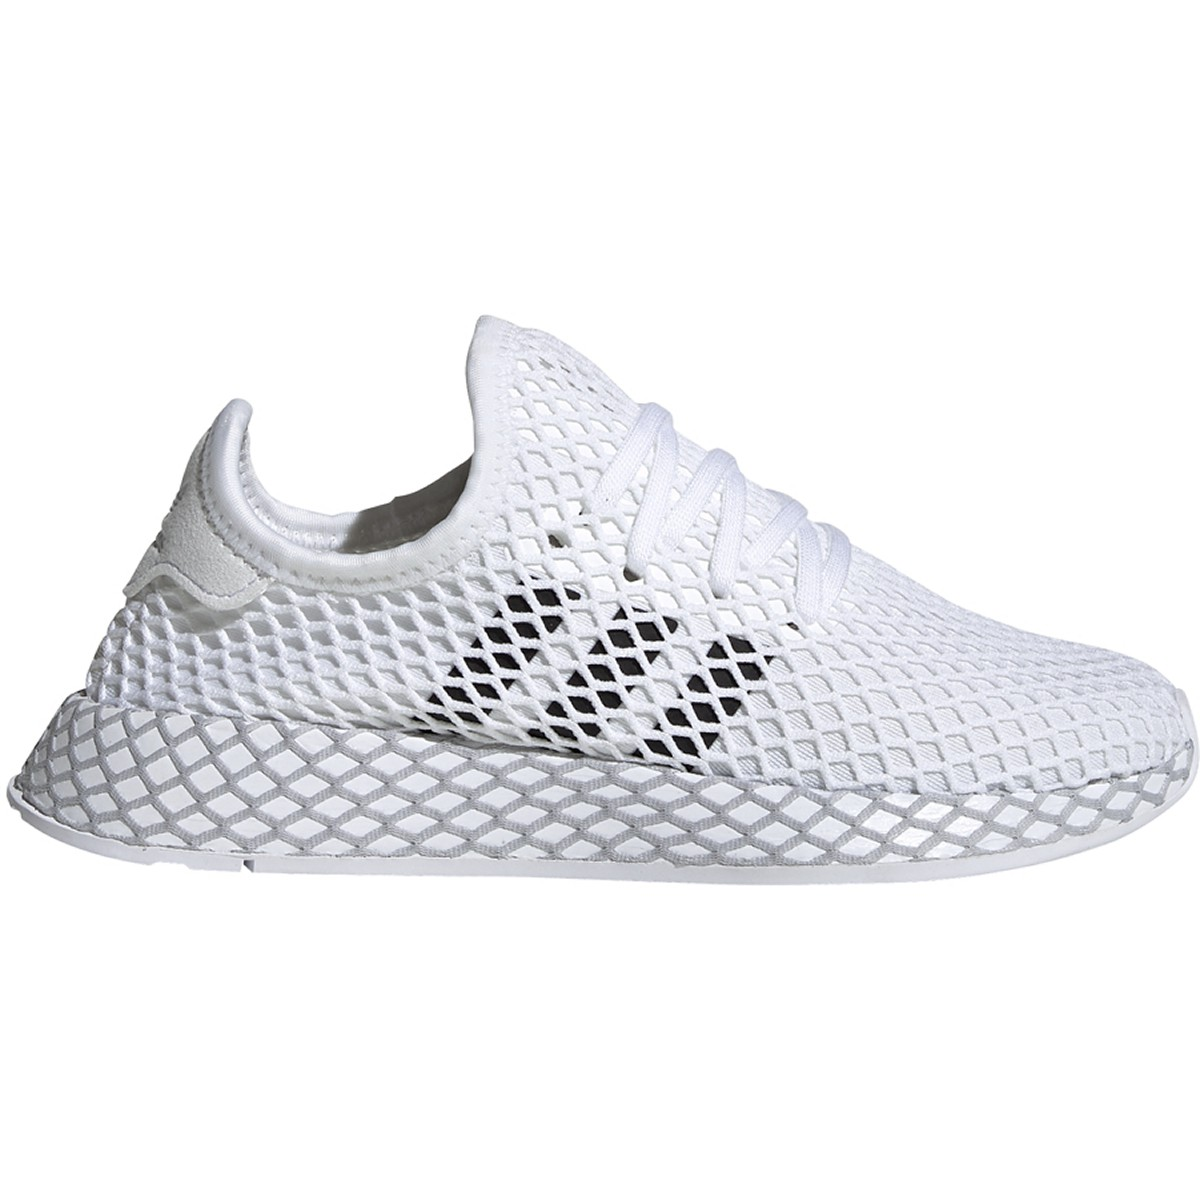 Details about adidas Boys DEERUPT RUNNER WHITE/BLACK/GREY SHOES - F34295